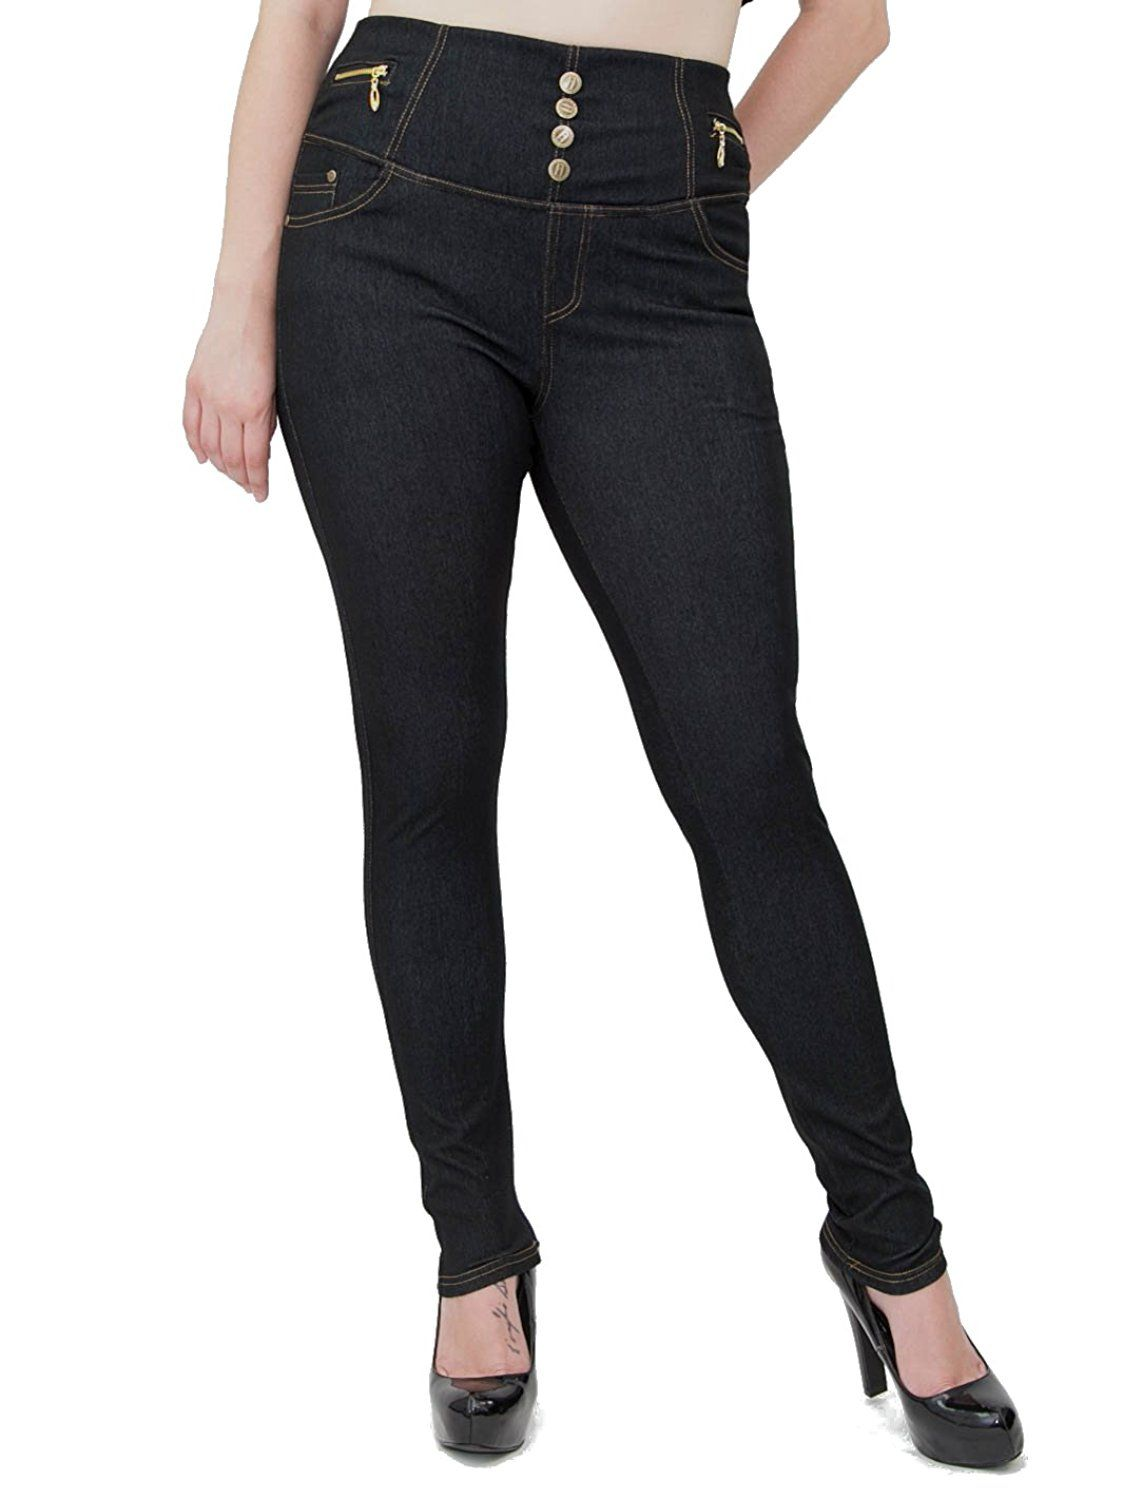 64658e65fc58d ROZAS Women s High Waist Plus Size Jeggings Spandex Pants AL15204X     New  and awesome product awaits you